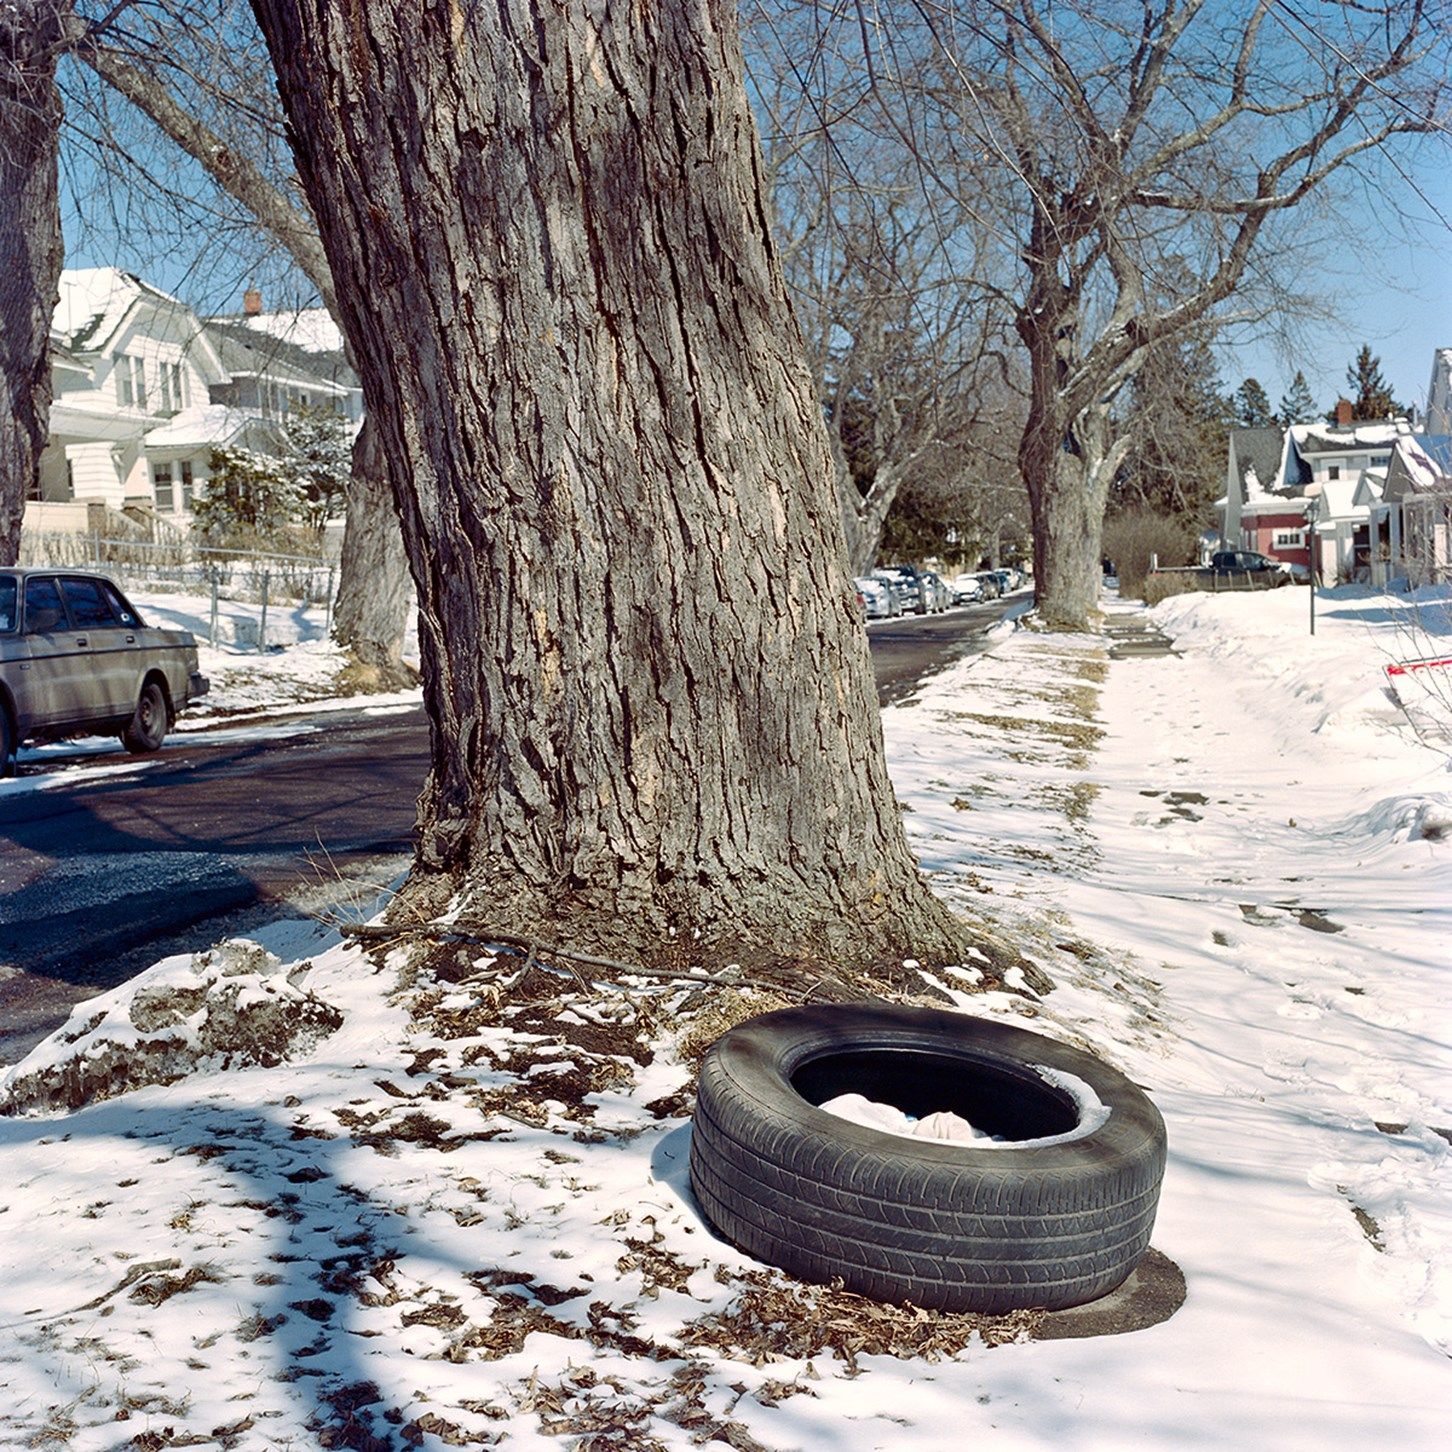 A Tire Near a Tree, Duluth, Minnesota, March 2018